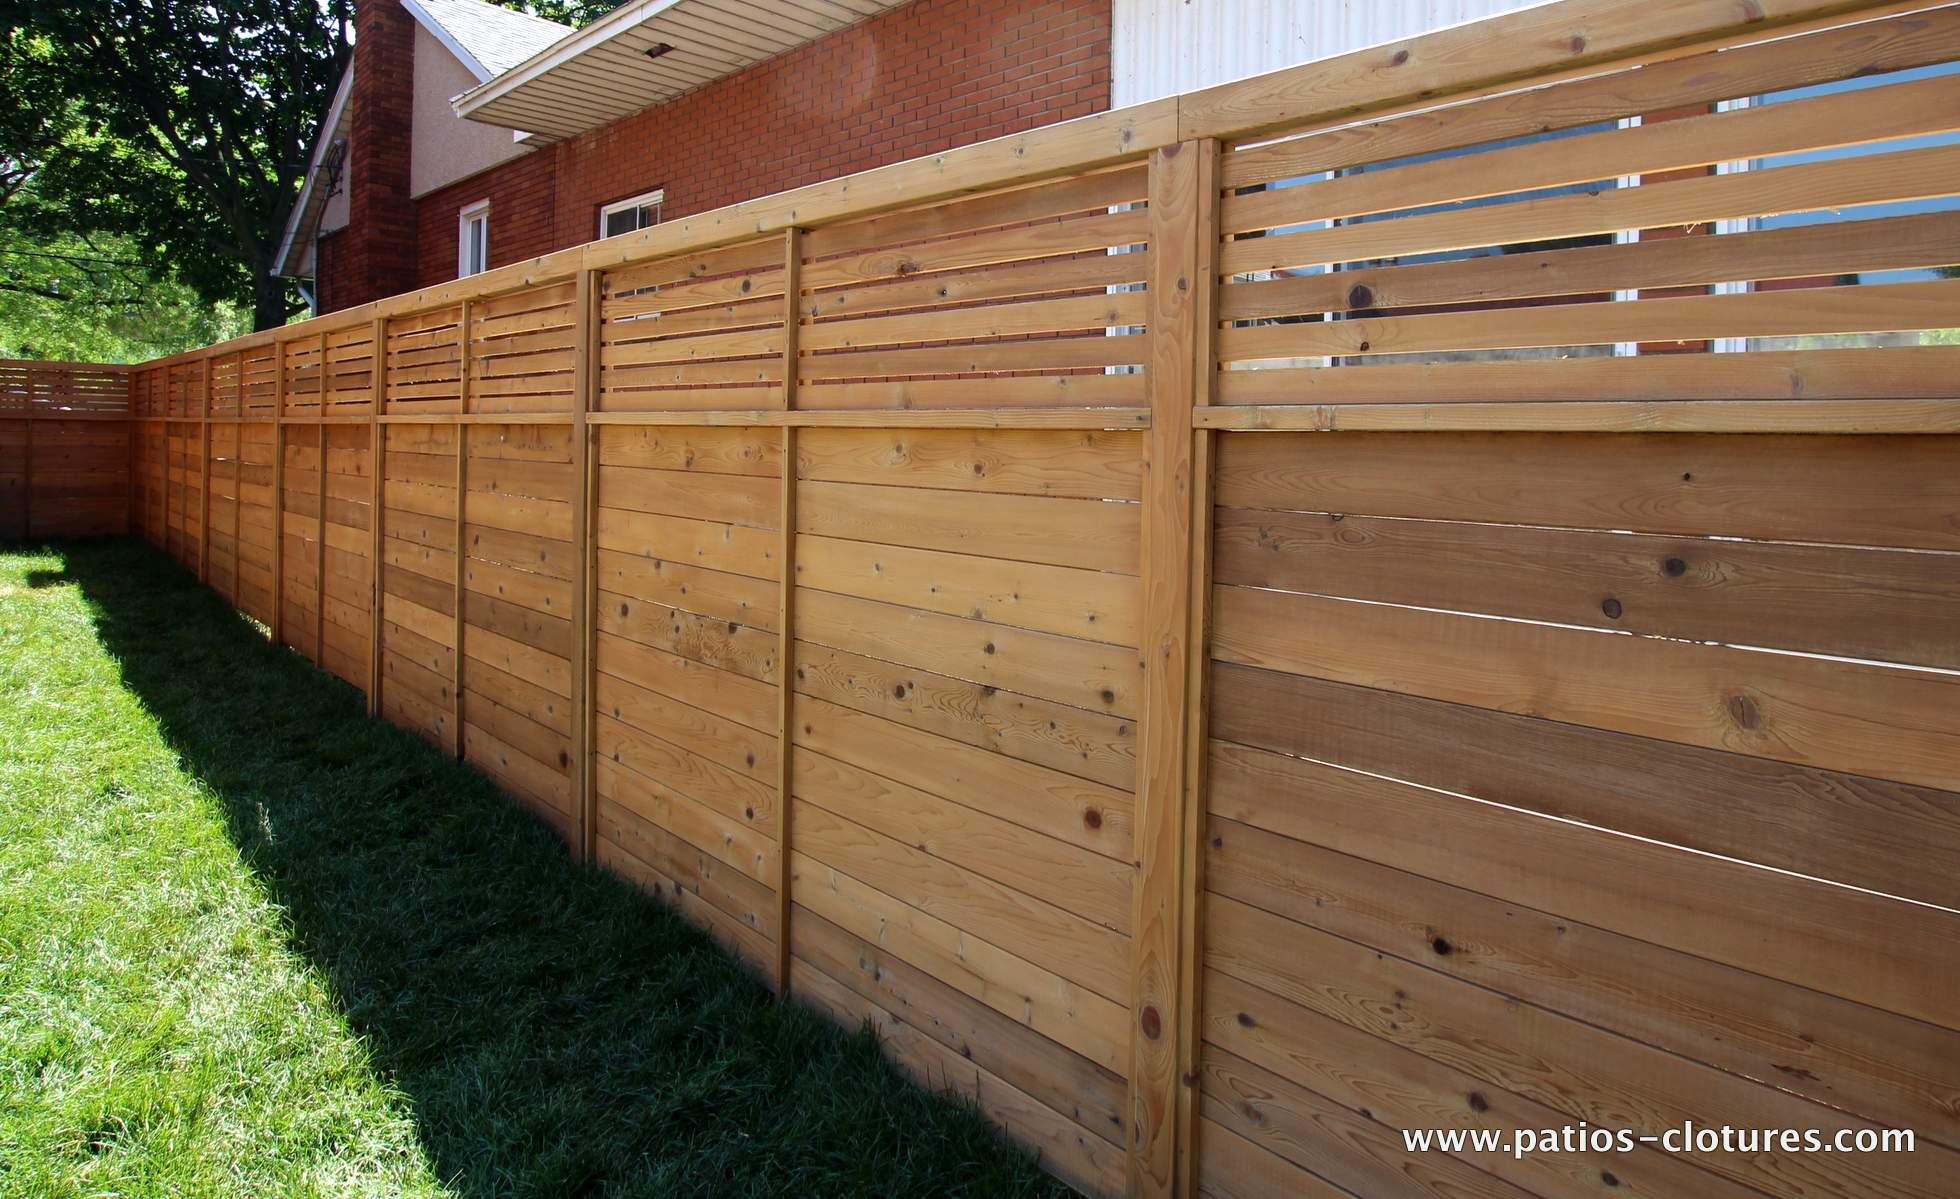 Horizontal Fence With Openwork Top That Provides Both Privacy And A Sense Of Openness Fence Design Garden Fence Panels Horizontal Fence